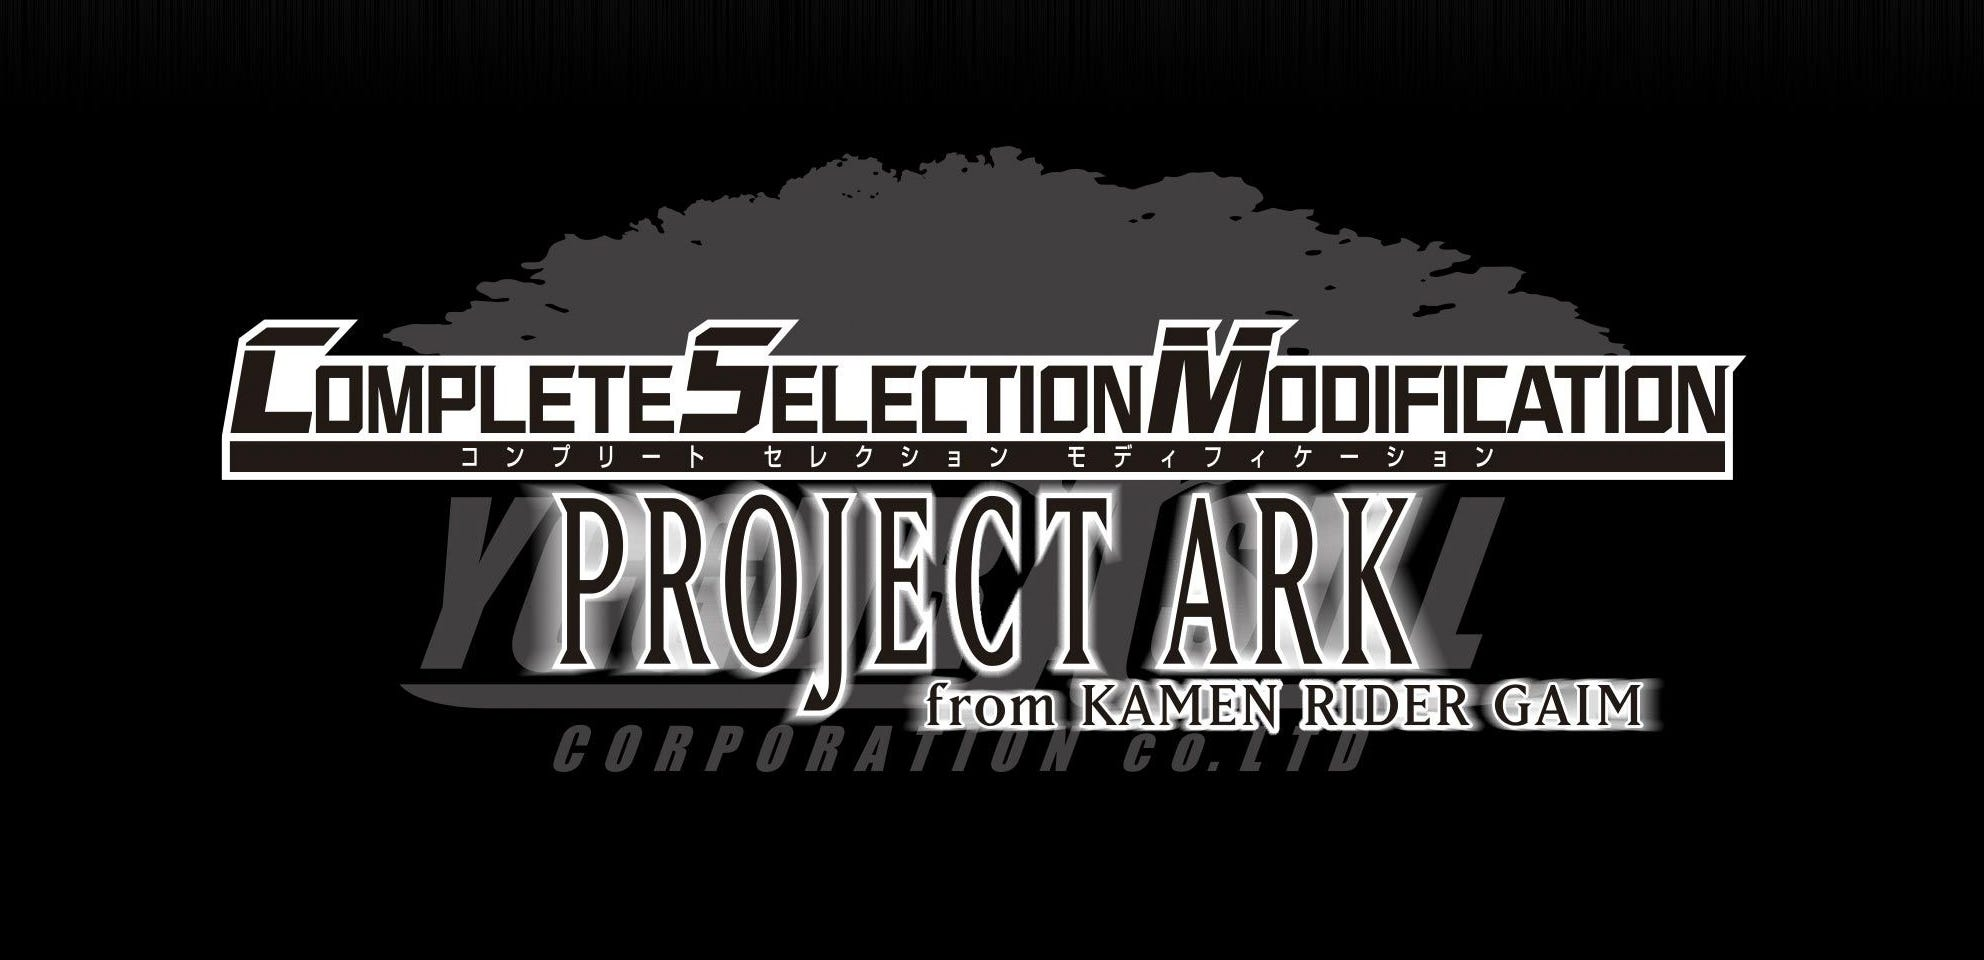 CSM Kamen Rider Gaim Project Ark Announced